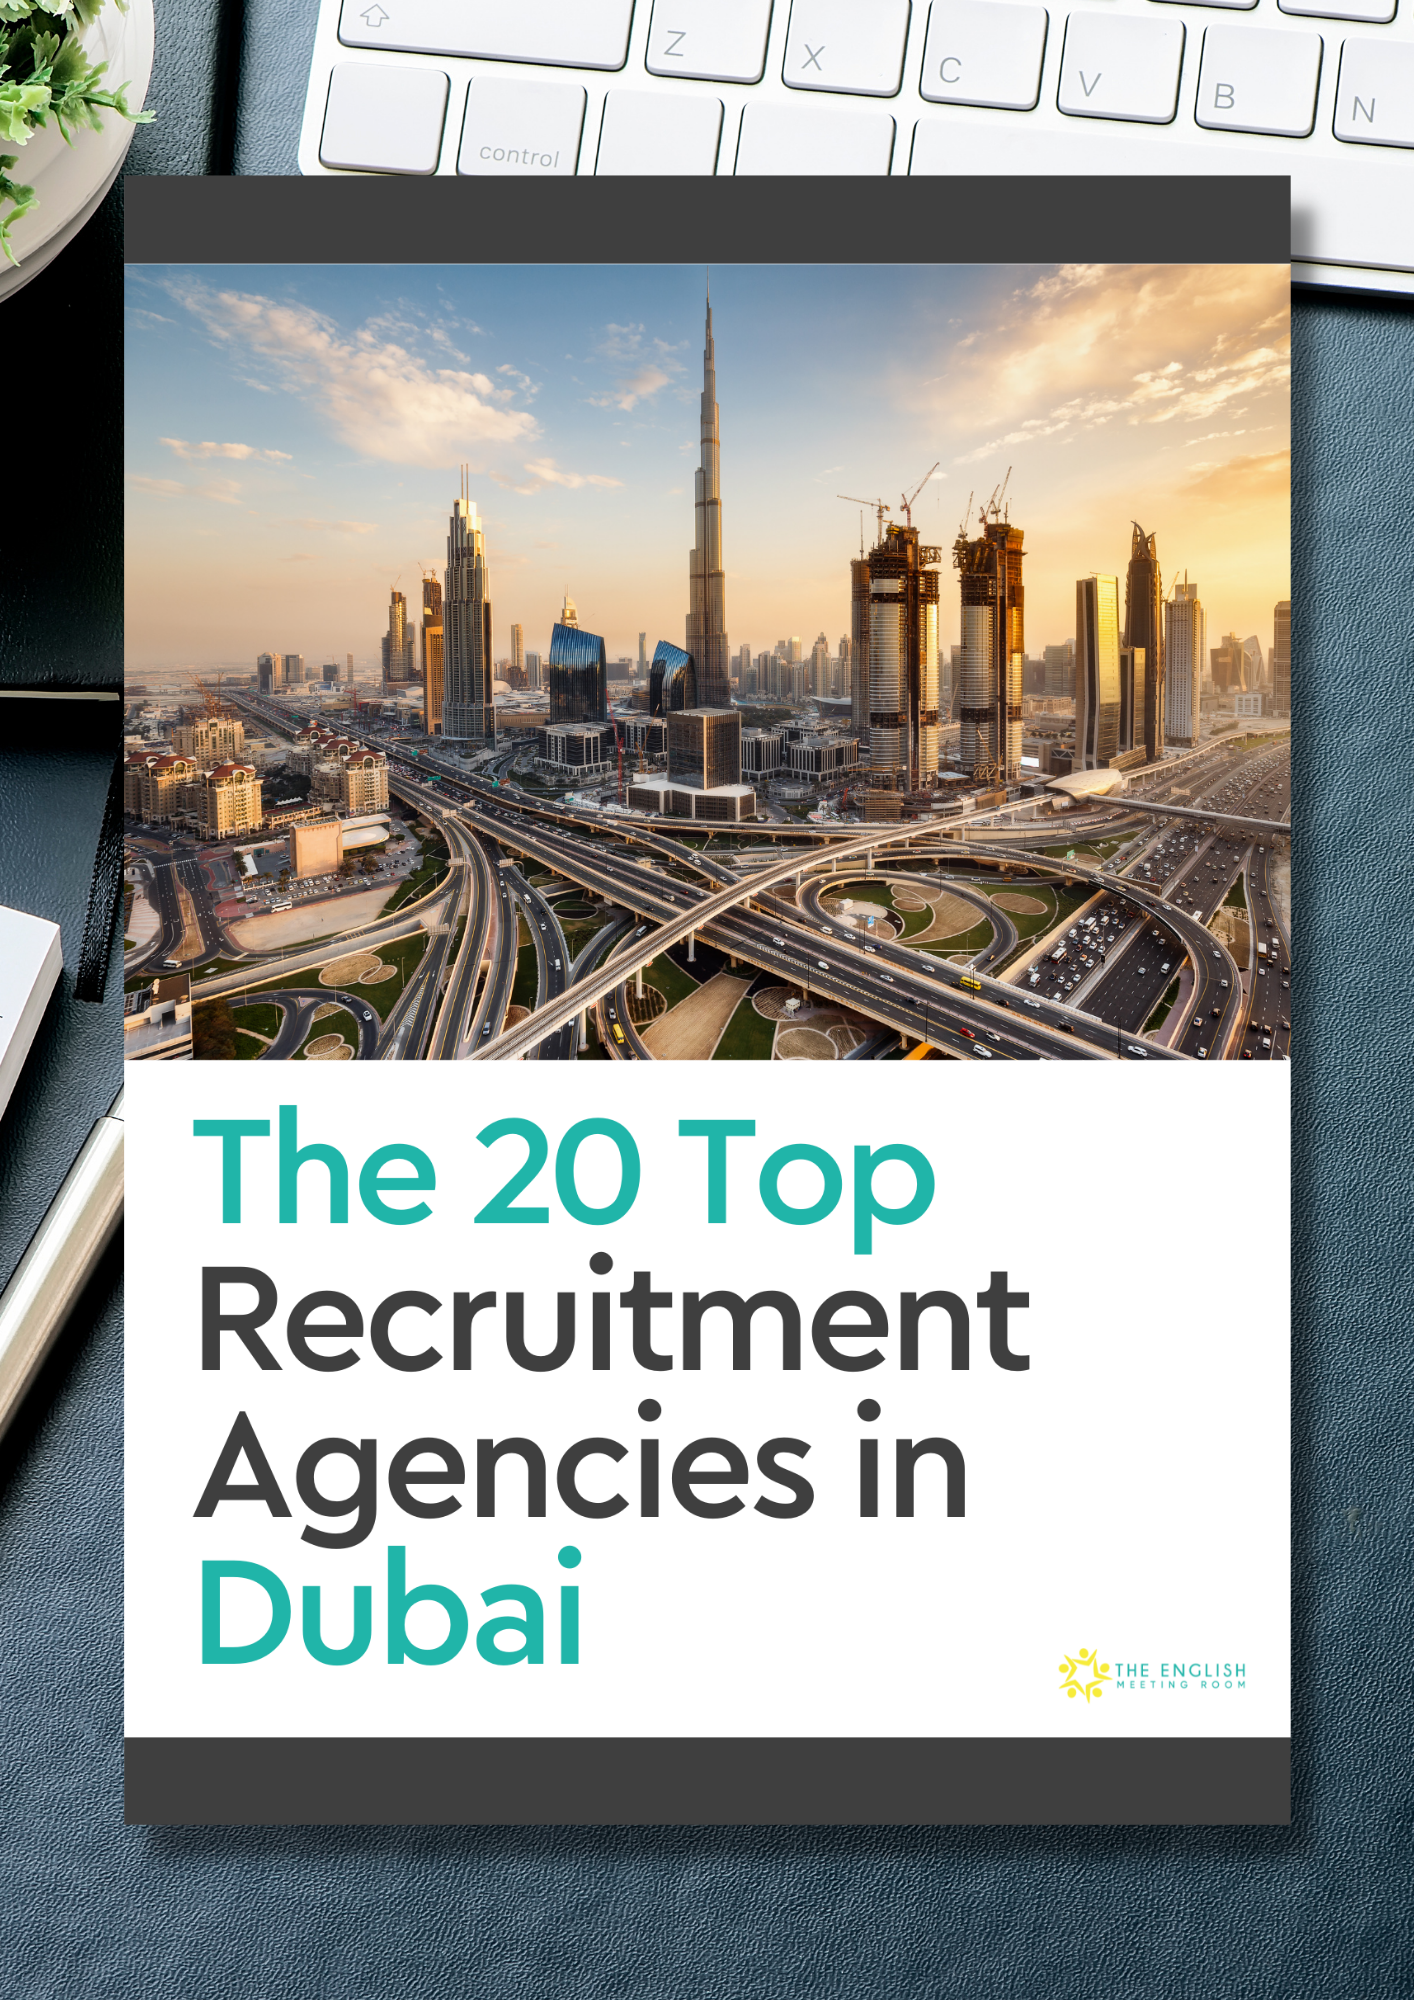 The 20 Top Recruitment Agencies in Dubai eBook. On the cover is an image of downtown Dubai and the Burj Khalifa